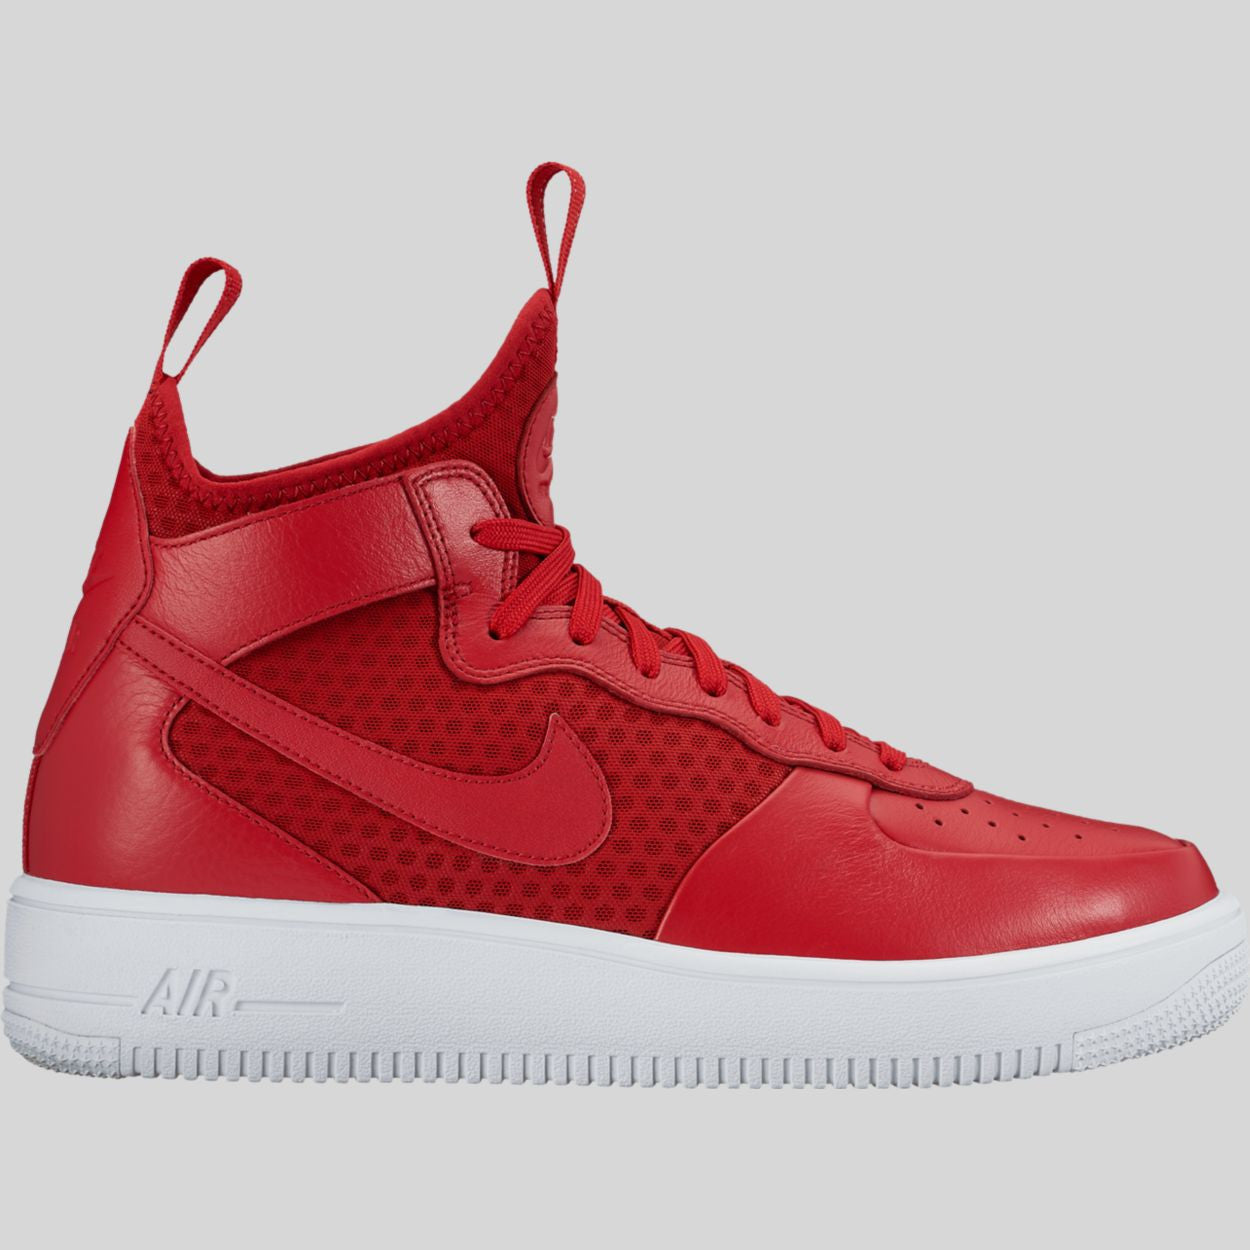 Nike Air Force 1 UltraForce Mid 864014600 Gym Red White Gym Red Gym Red